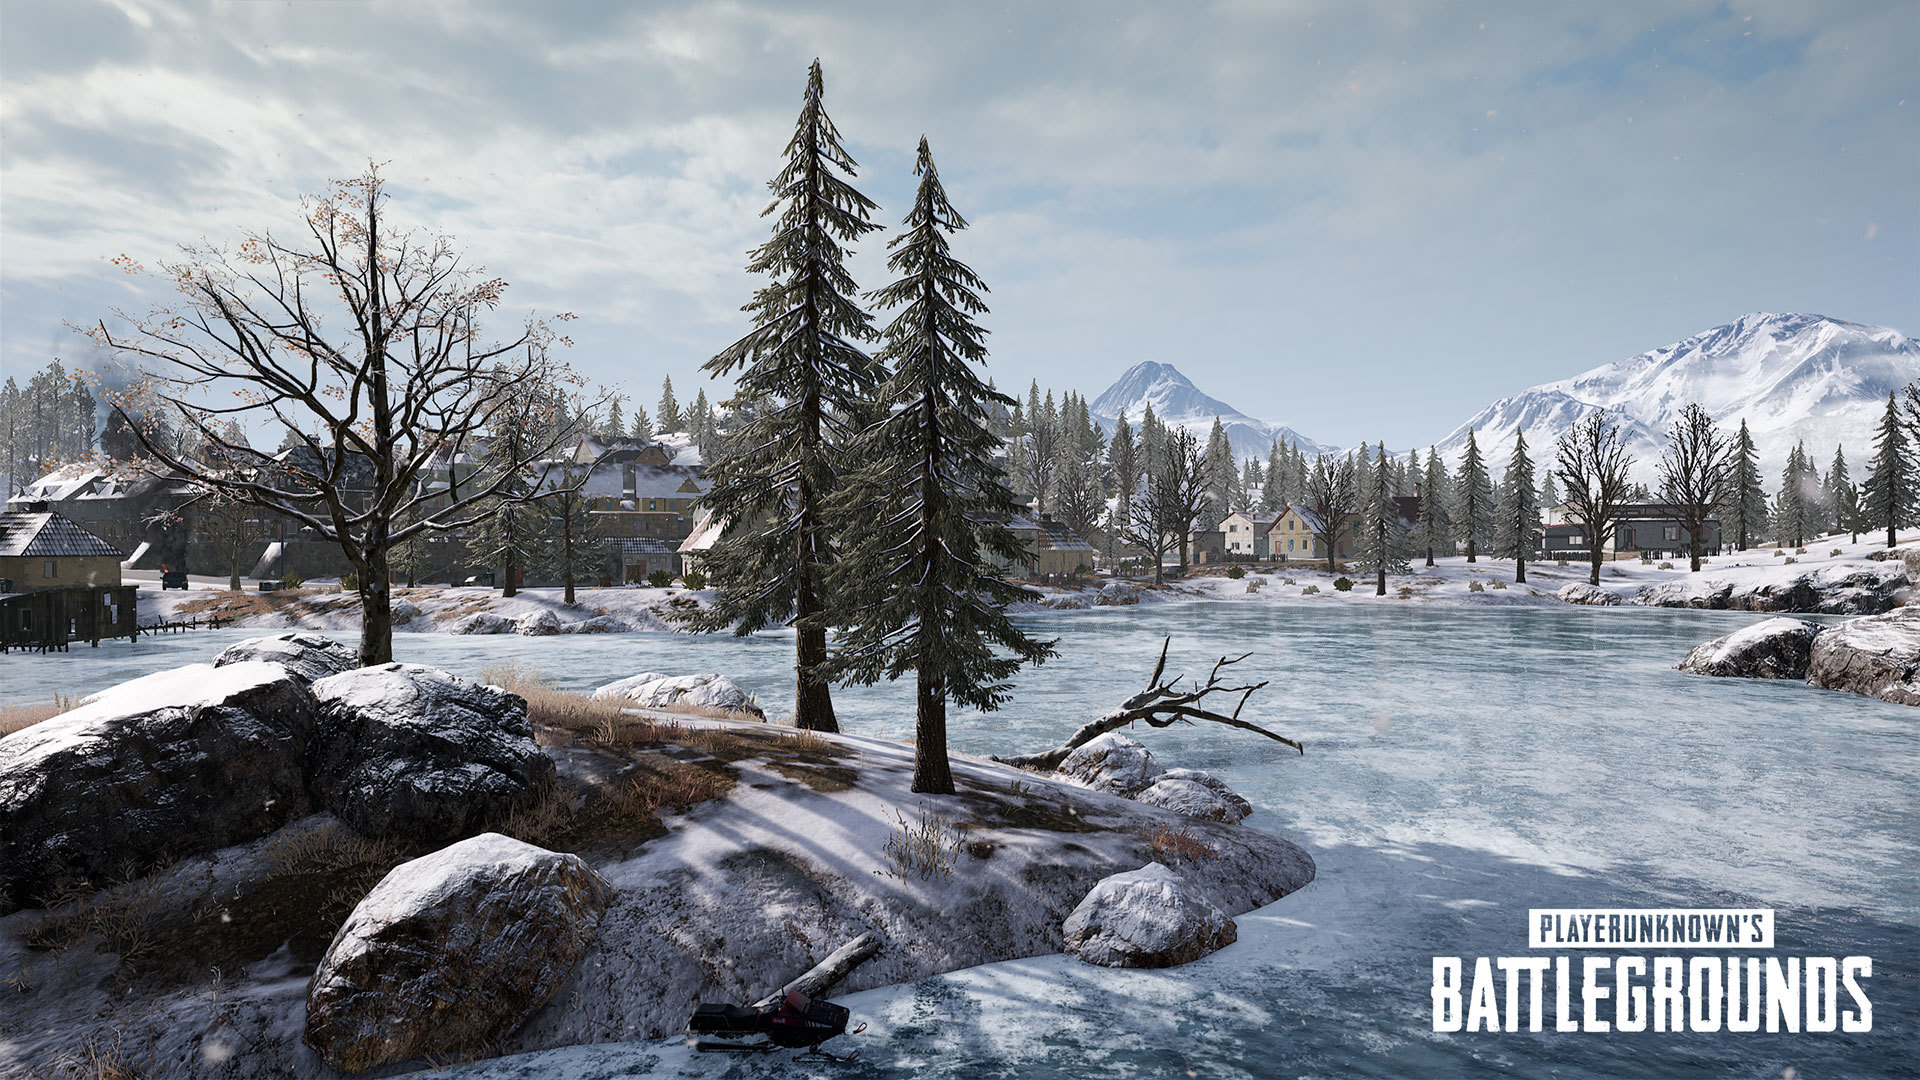 Of All The Battlegrounds In The World, None Are Quite As Dangerous As  Vikendi. A 6km Island Blanketed In Snow And Bathed In The Aurora Borealis,  ...